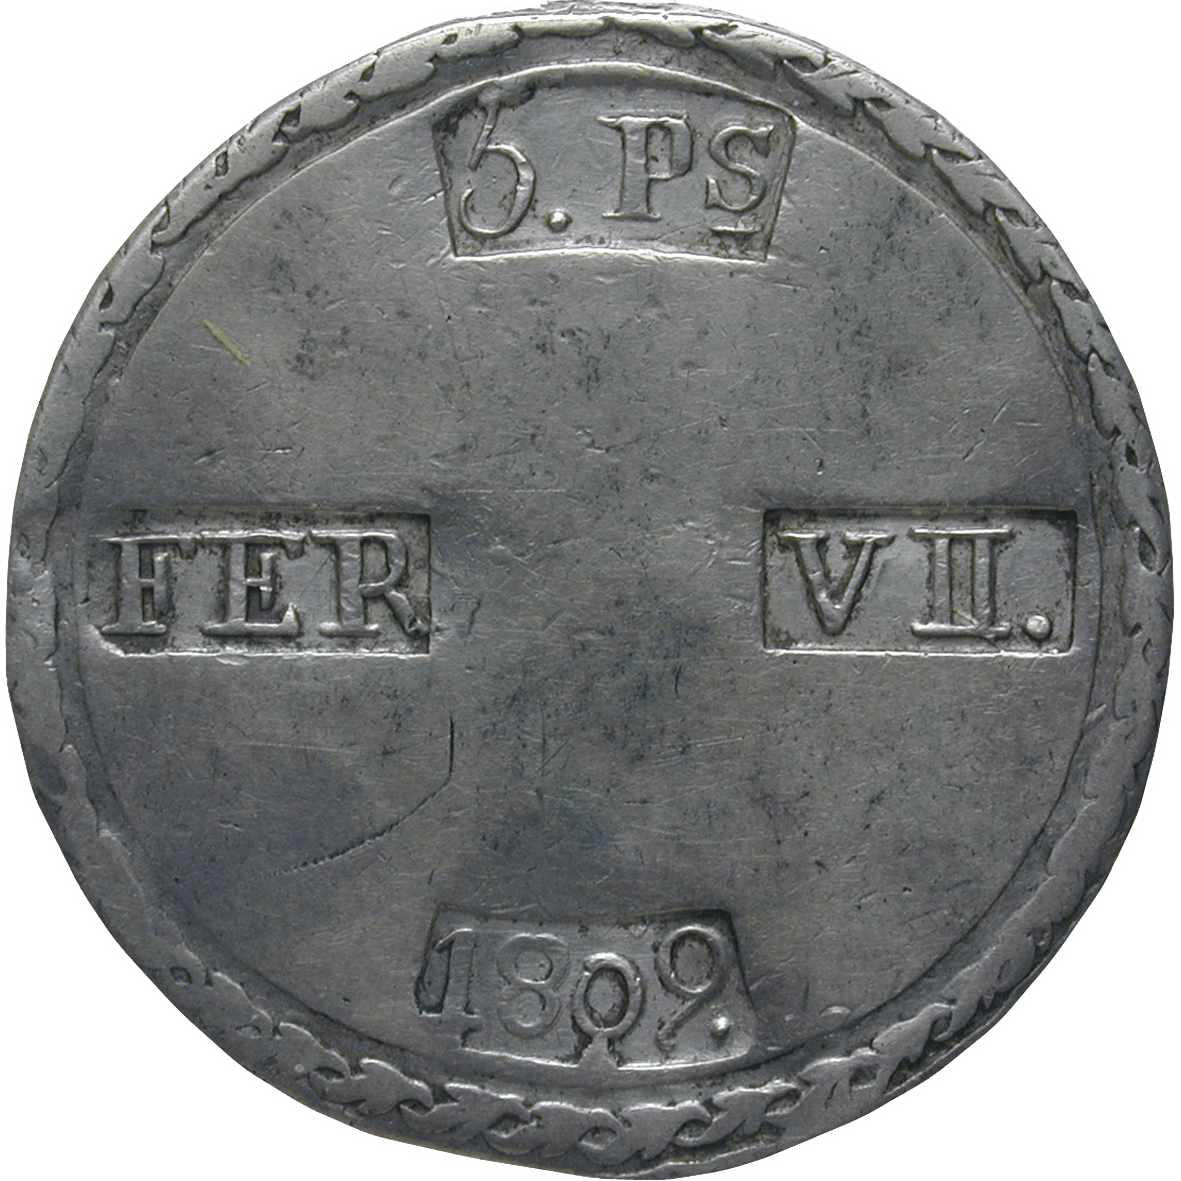 Kingdom of Spain, Ferdinand VII, 5 Pesetas 1809 (reverse)